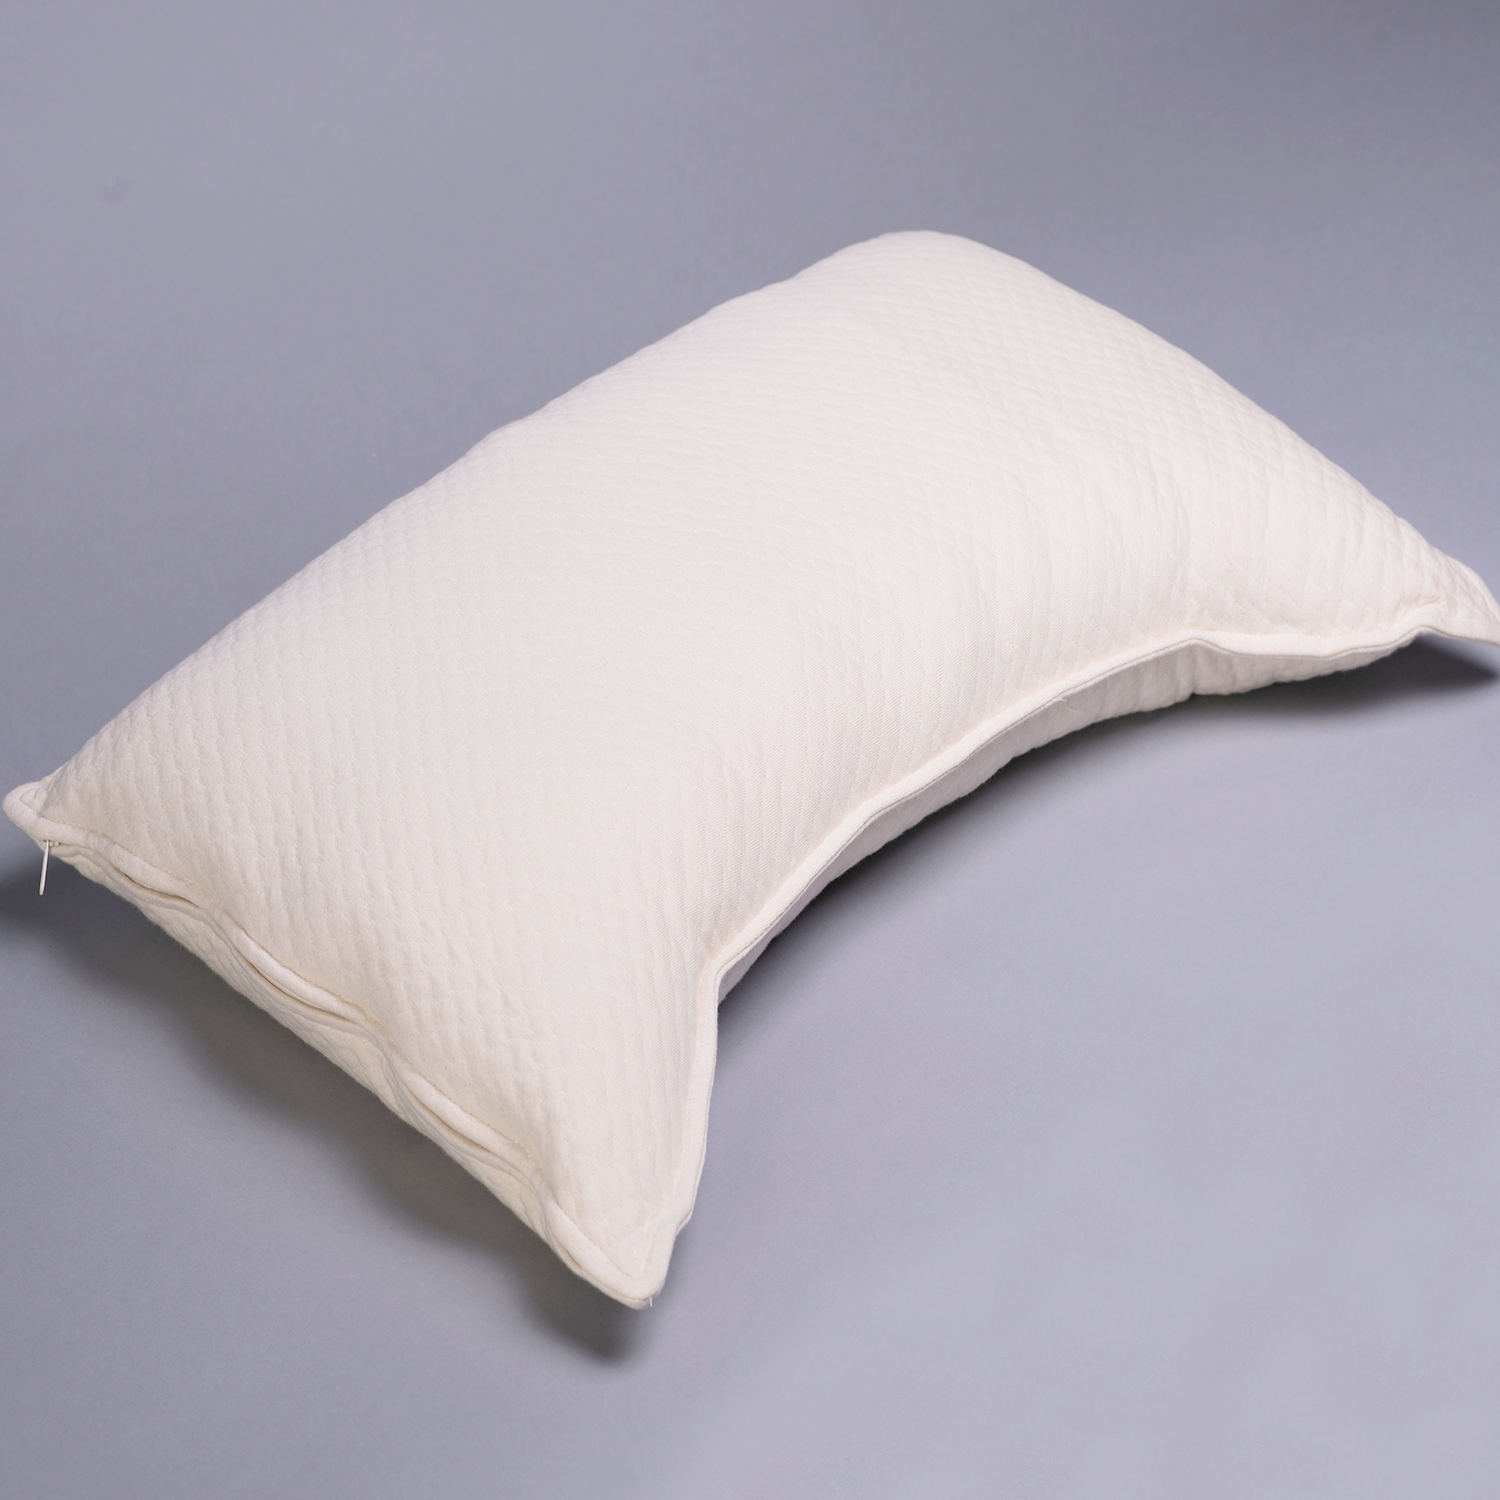 Mélange Profile Pillow | Bedrooms & More, Seattle